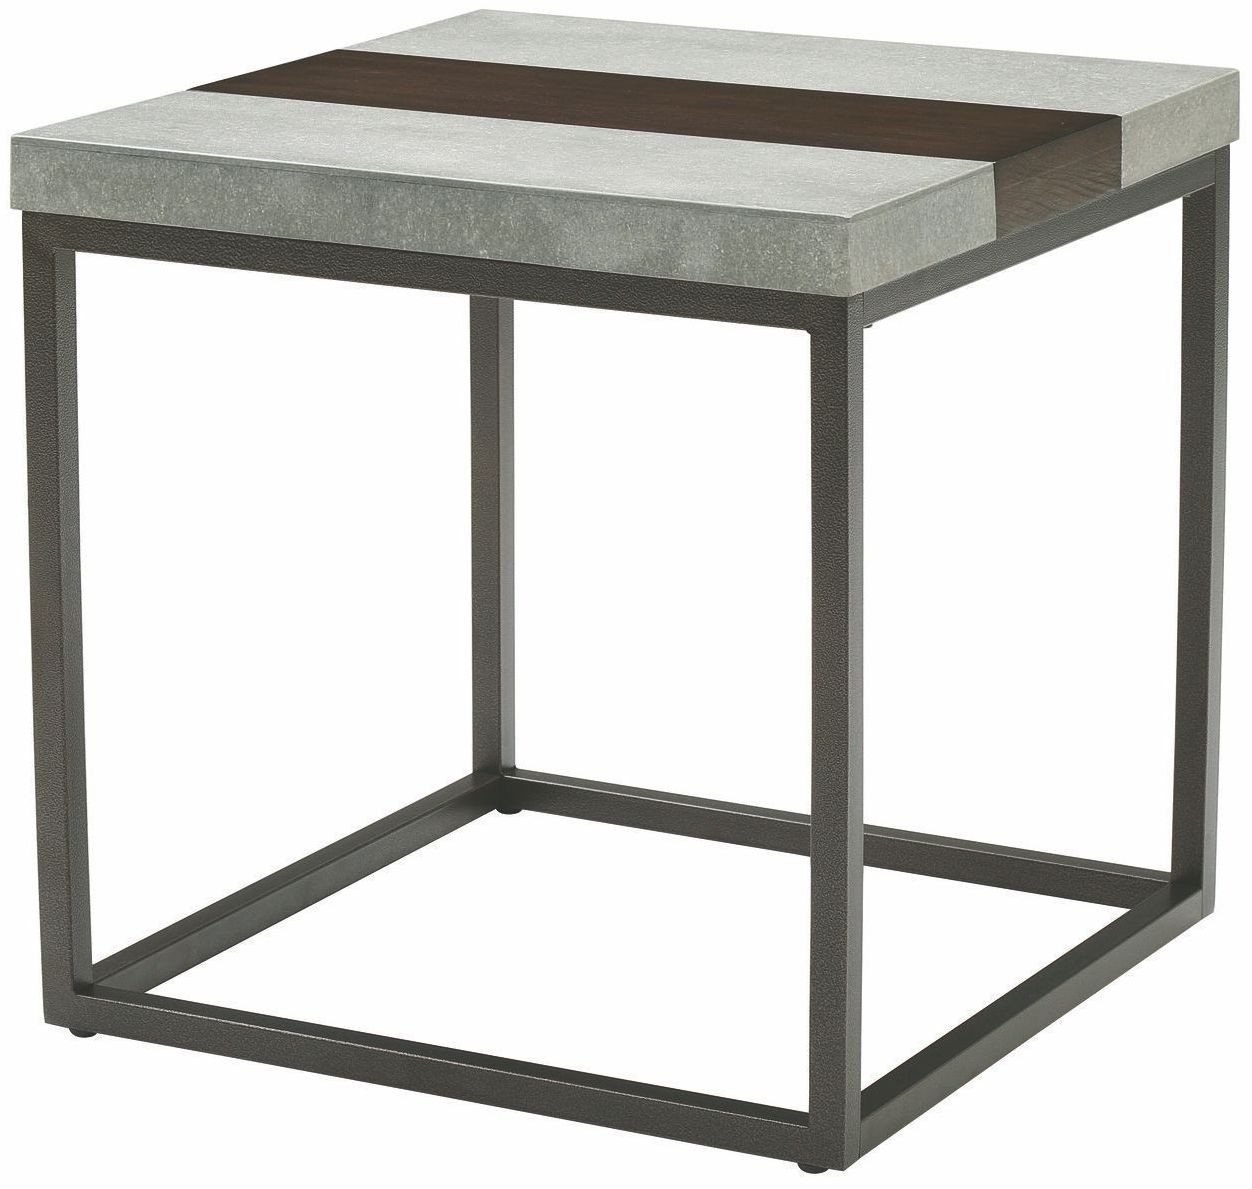 Stoneworks Merlot Natural Stone End Table From Emerald